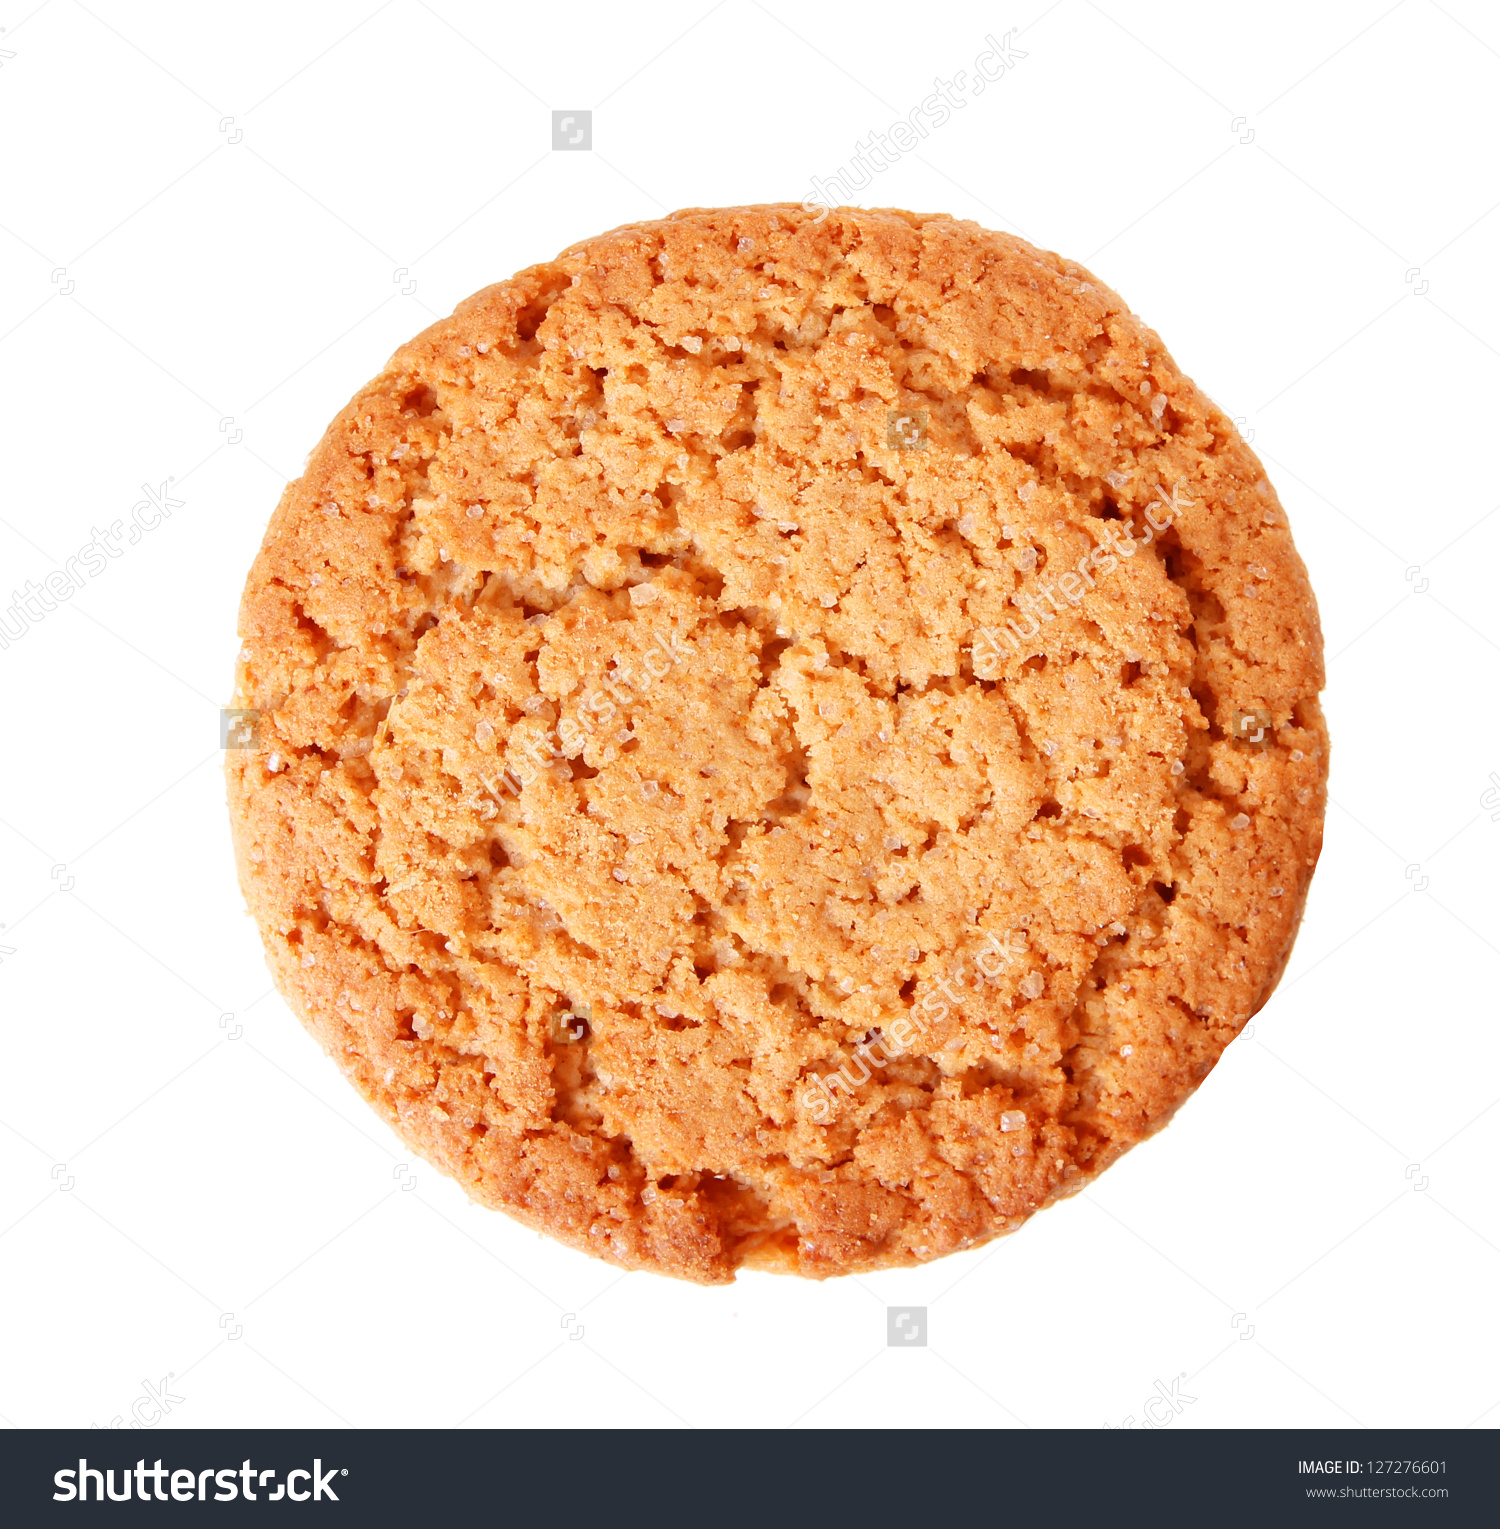 Oatmeal clipart. Cookies clipground top view